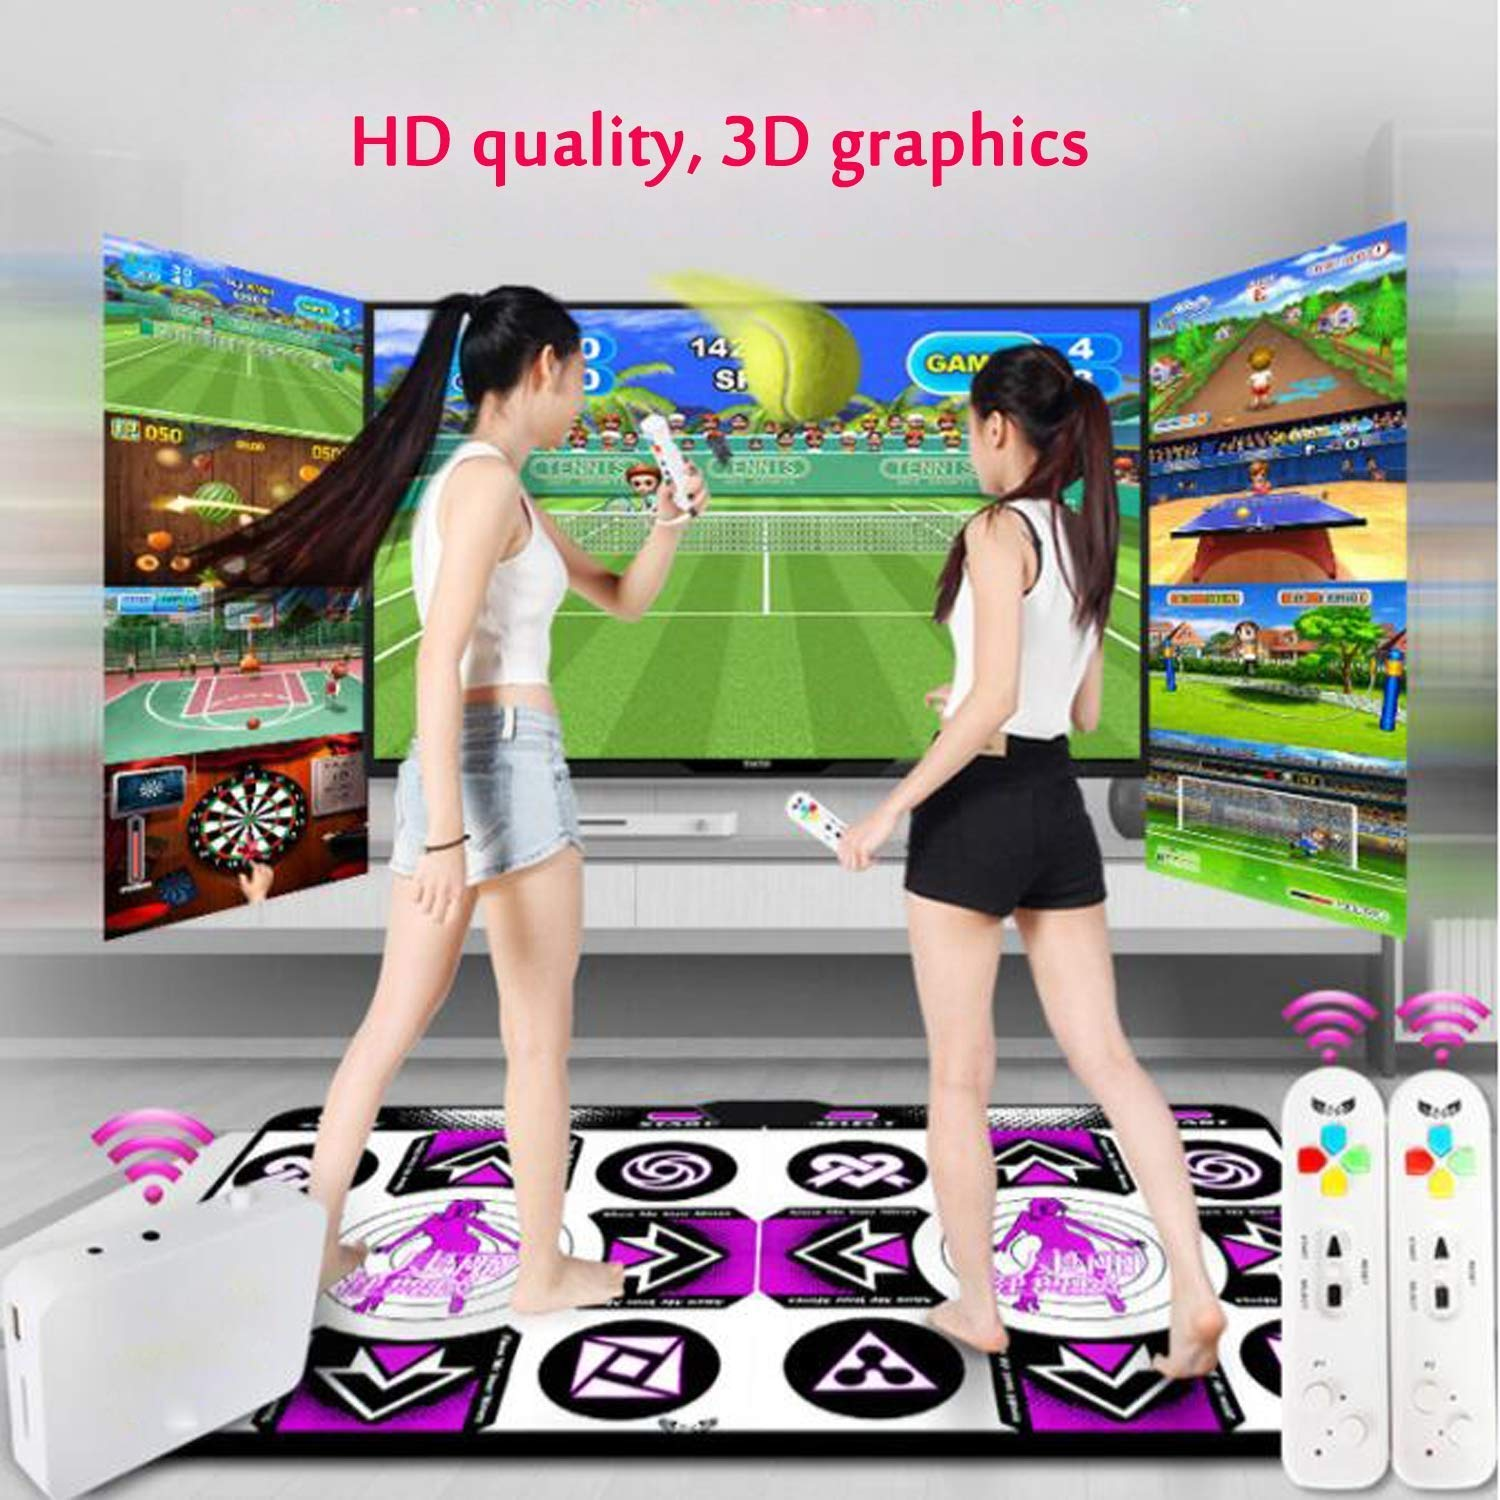 rui @ Double Wireless Dance Game Mat Pad Blanket, Somatosensory Game Console Dance Machine, Suitable For Children And Adults To Connect Tv And Computer Weight Loss Exercise Game Console(English Ver by RUIJING (Image #2)